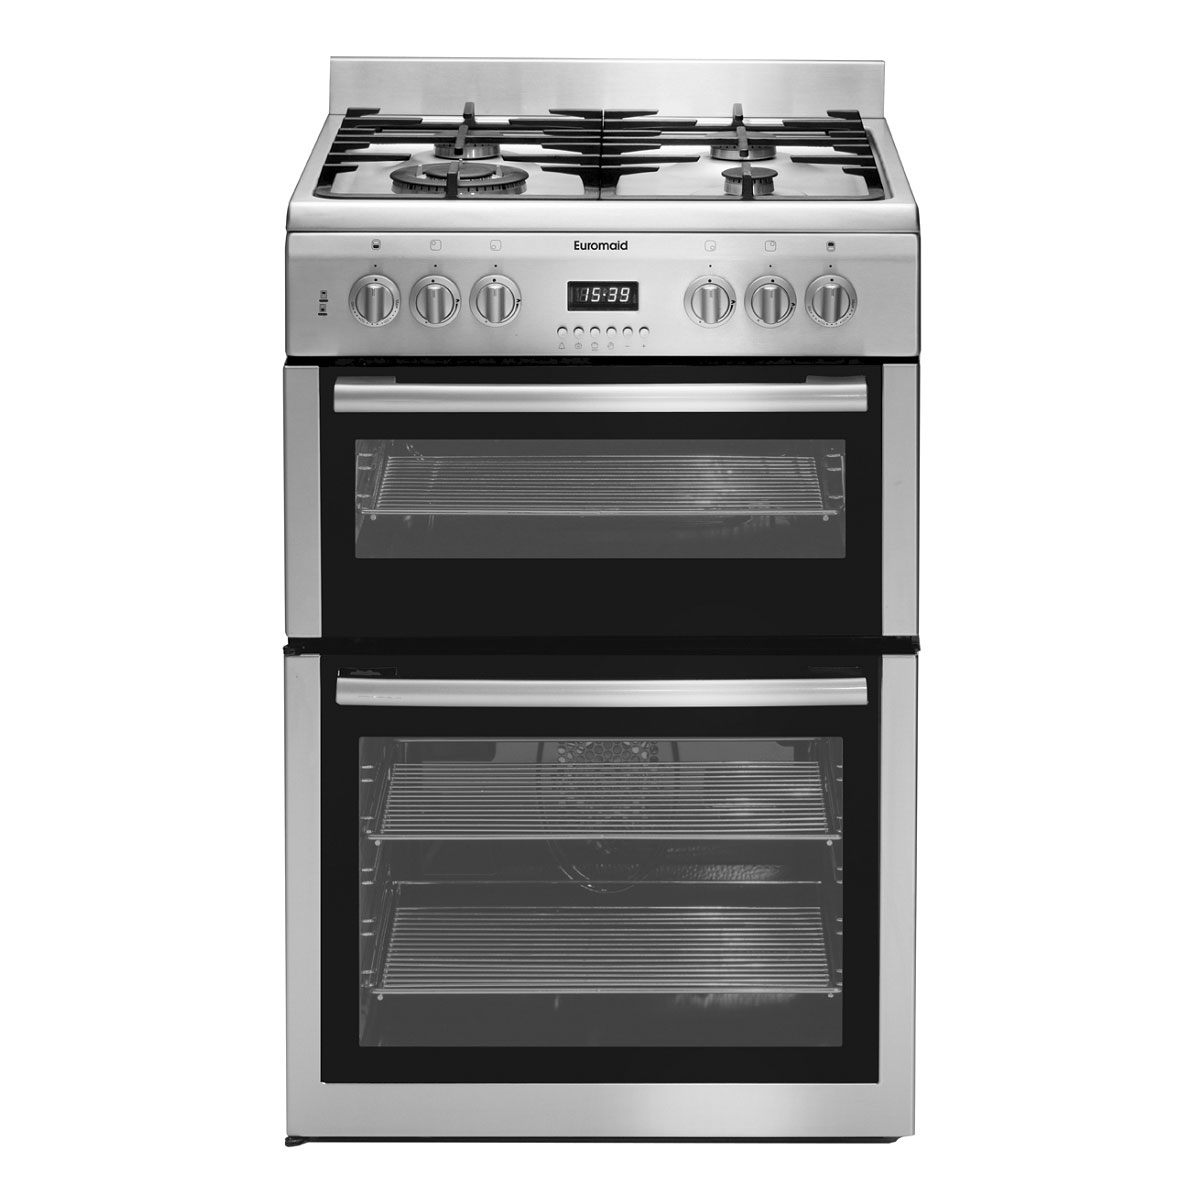 Euromaid GDDS60 Freestanding Dual Fuel Oven Stove